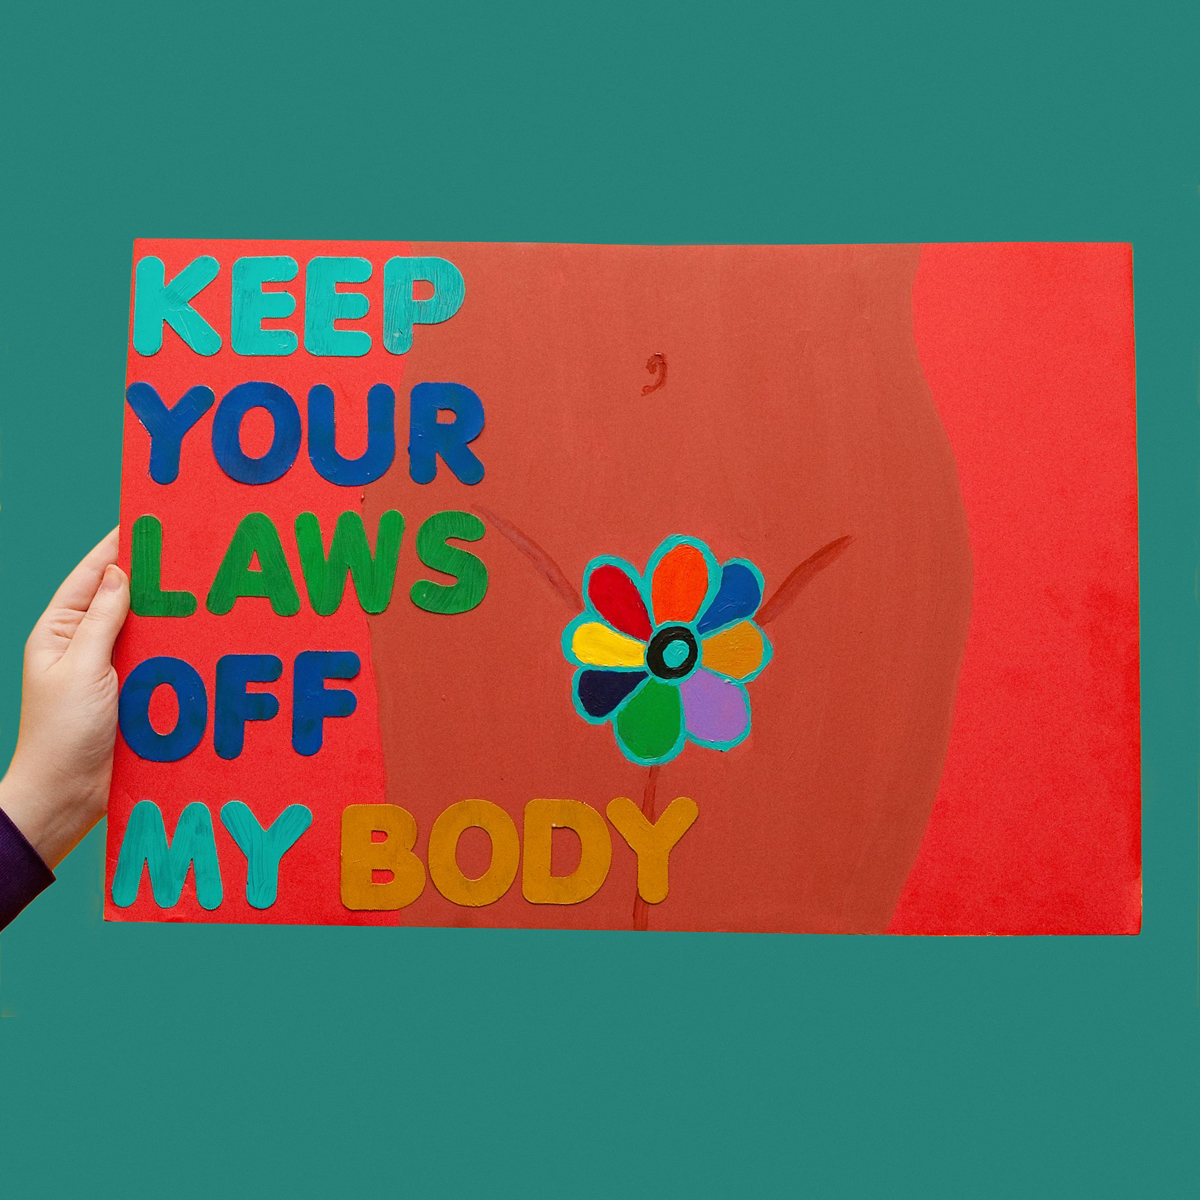 45 Protest Signs_Brandon and Olivia Locher_15_Keep Your Laws Off My Body